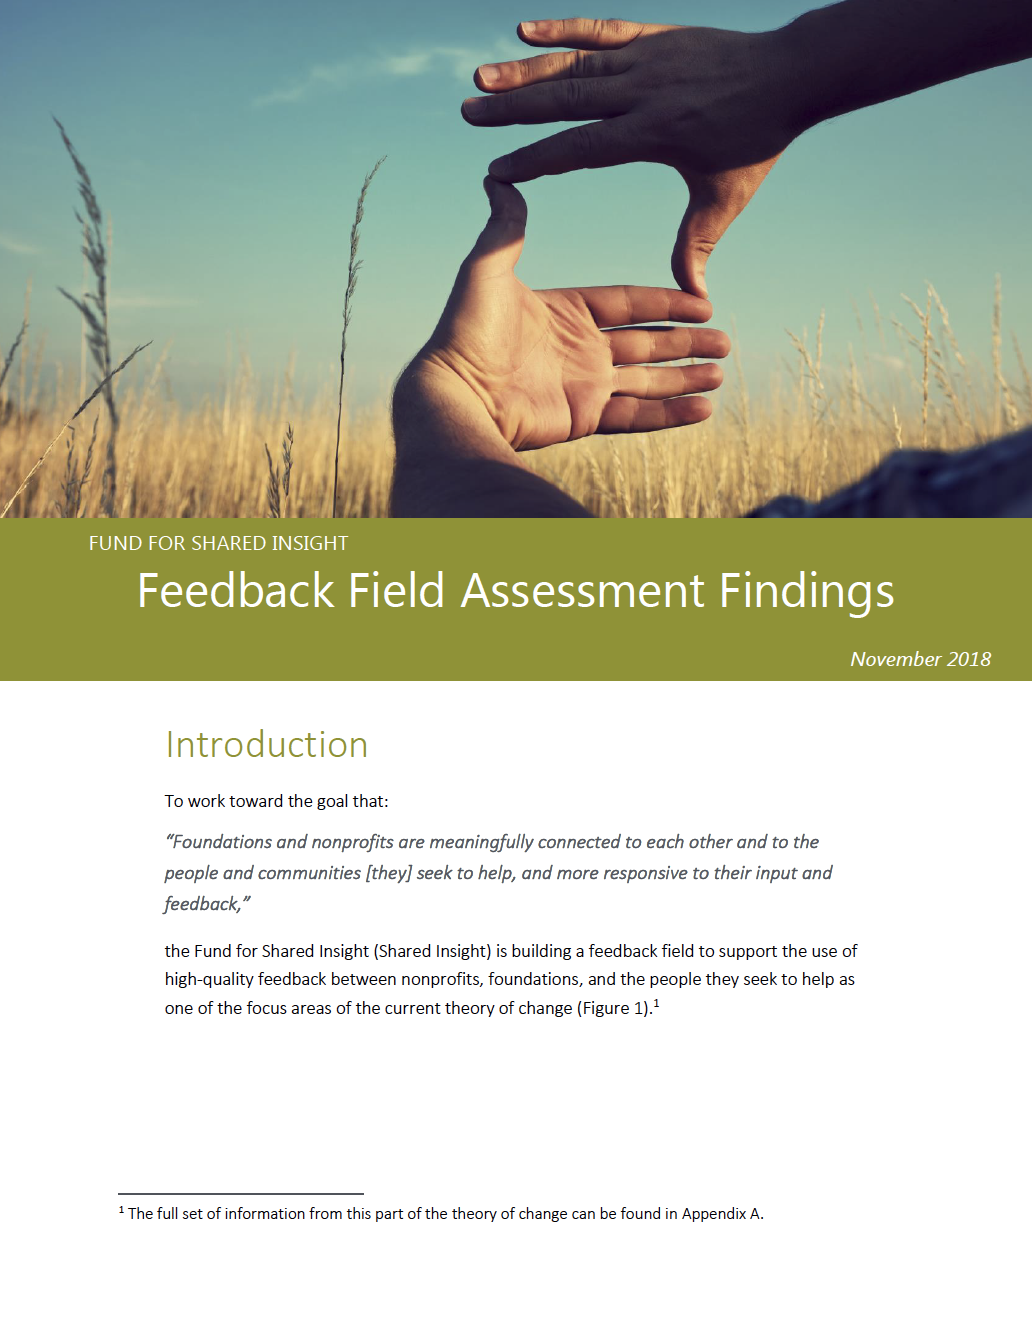 Feedback Field Assessment Findings